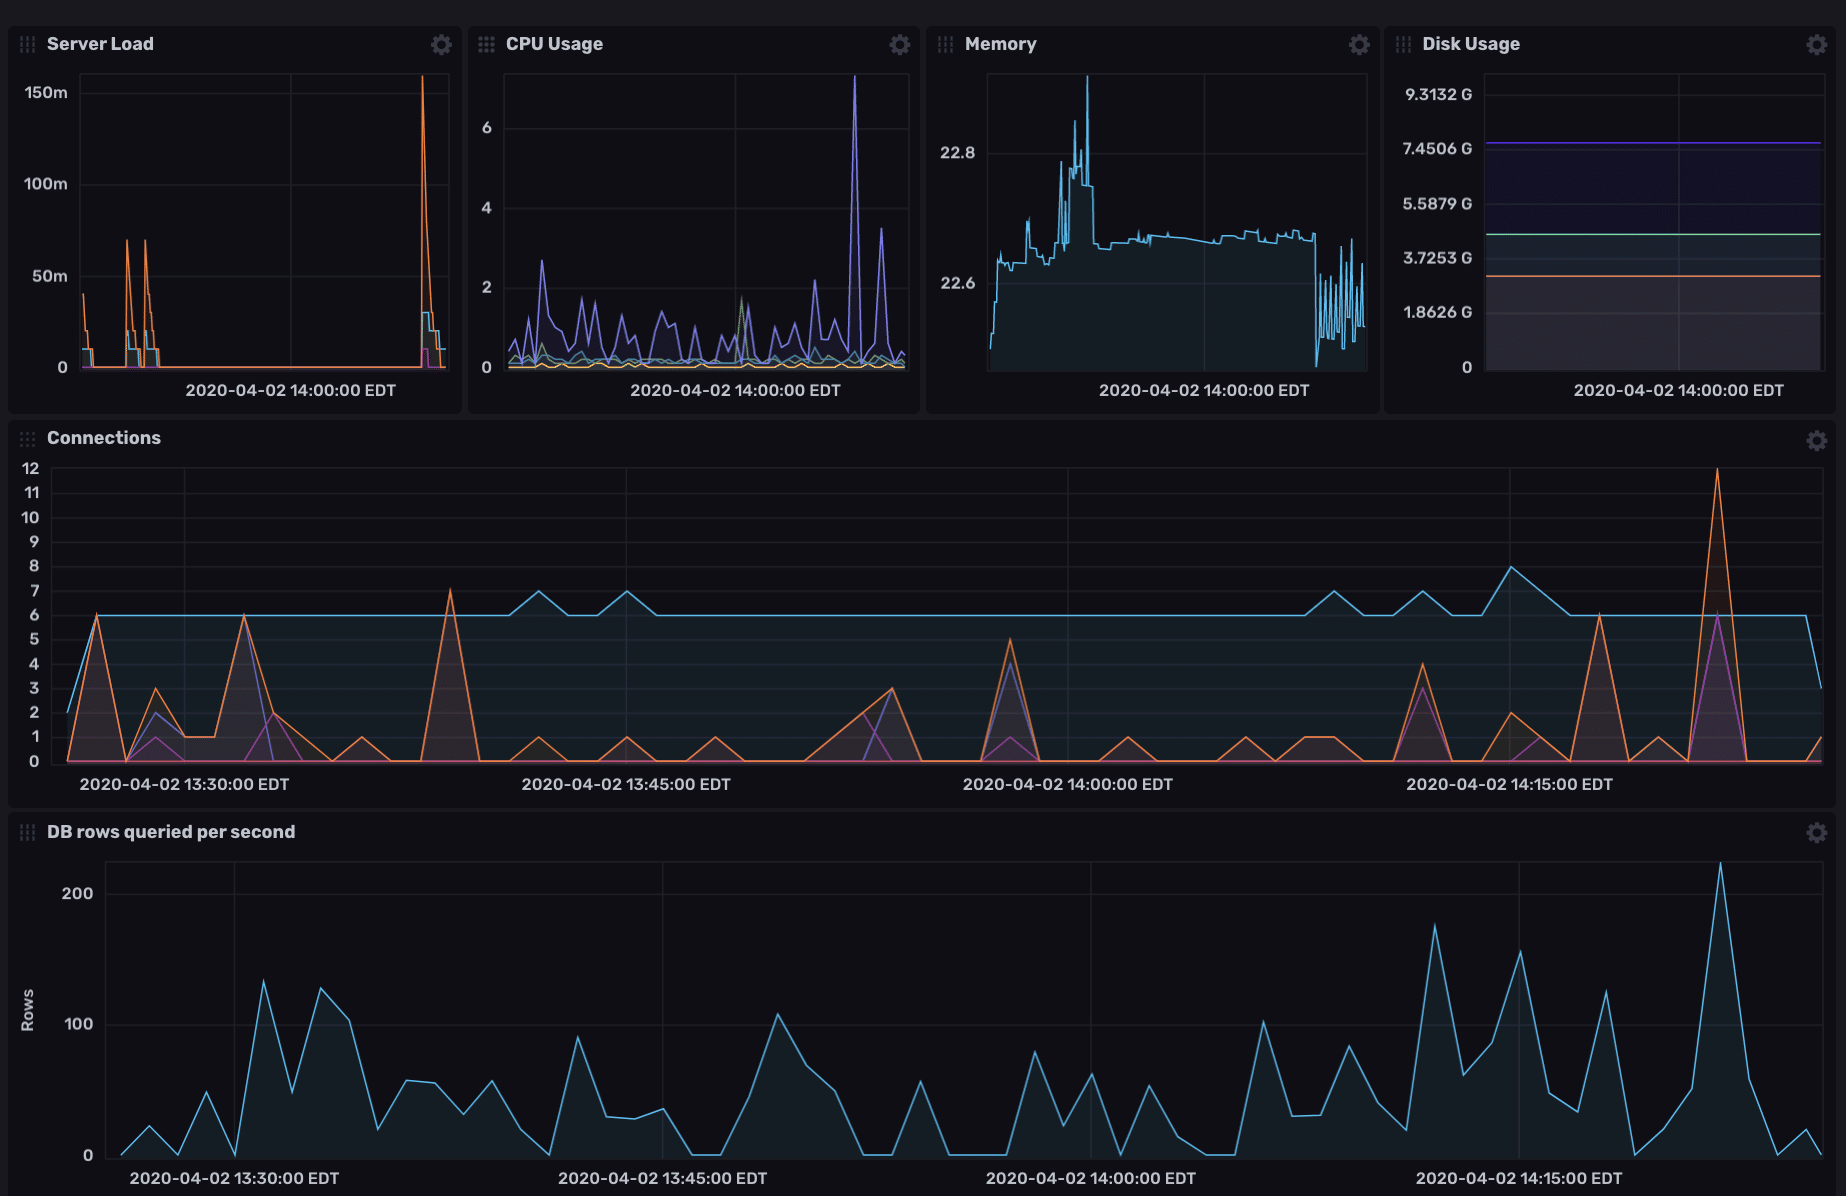 Webserver Monitoring (Apache & PostgreSQL) Monitoring Dashboard